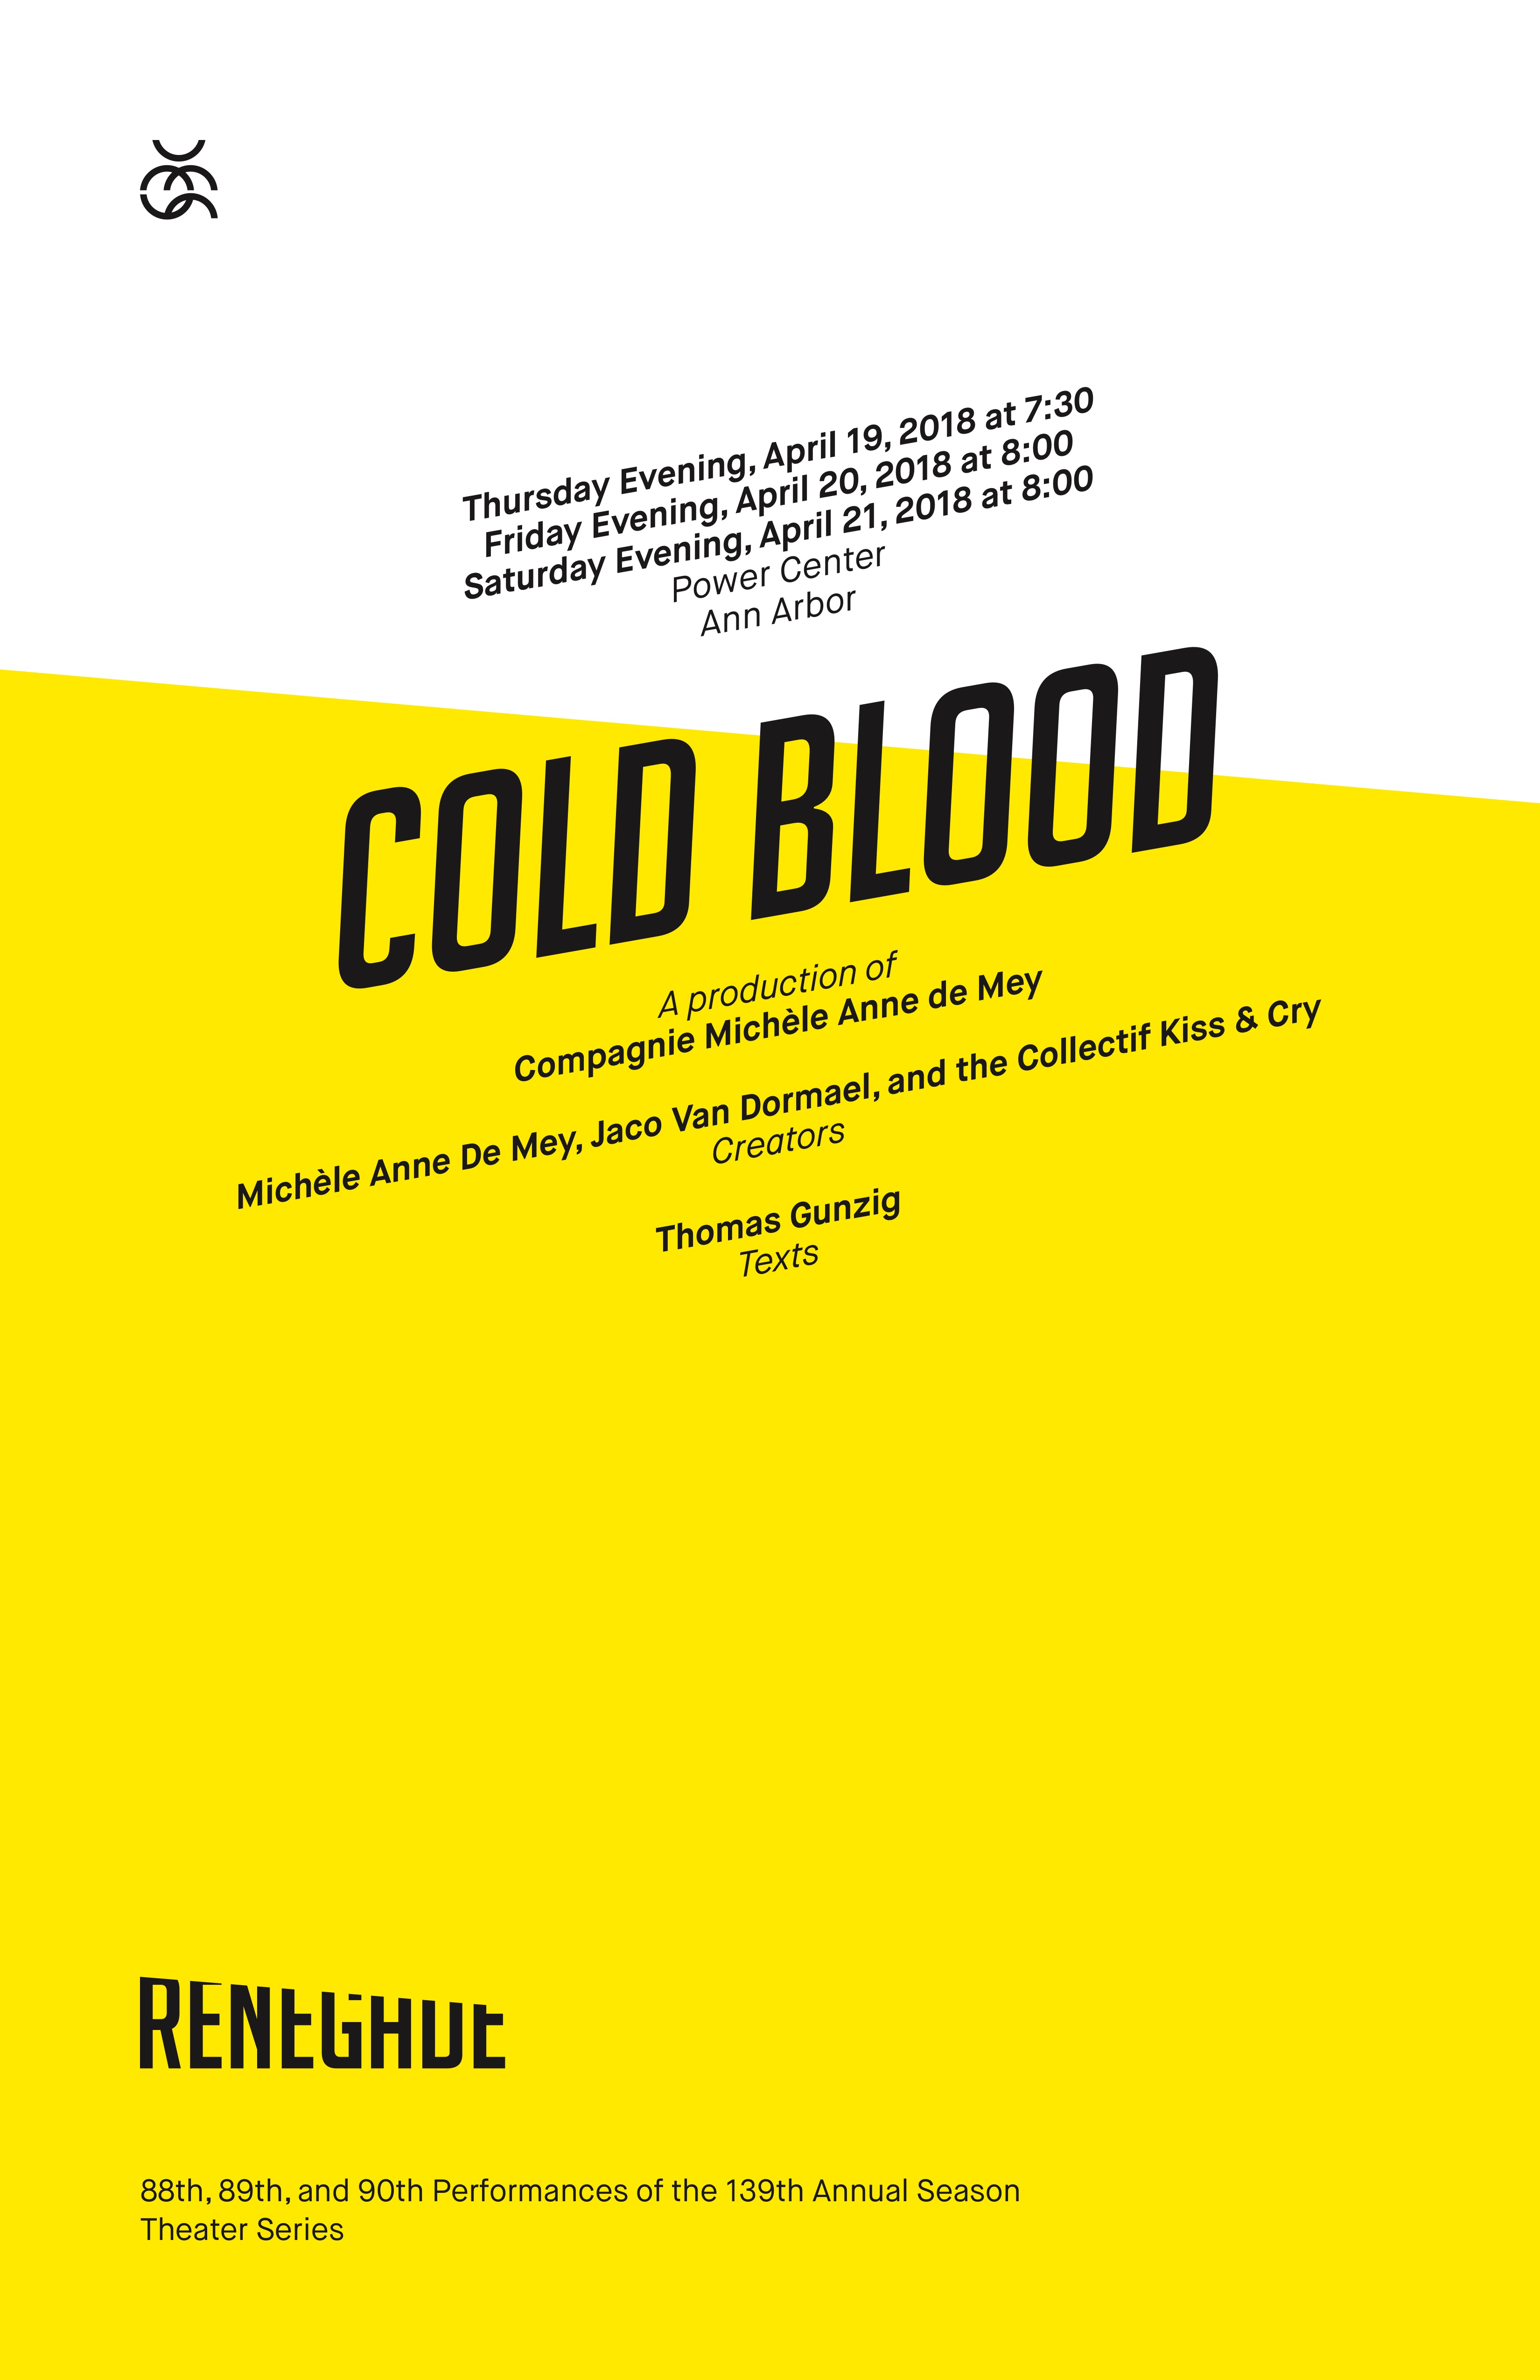 UMS Concert Program, April 19, 2018 - April 21, 2018 - Cold Blood image